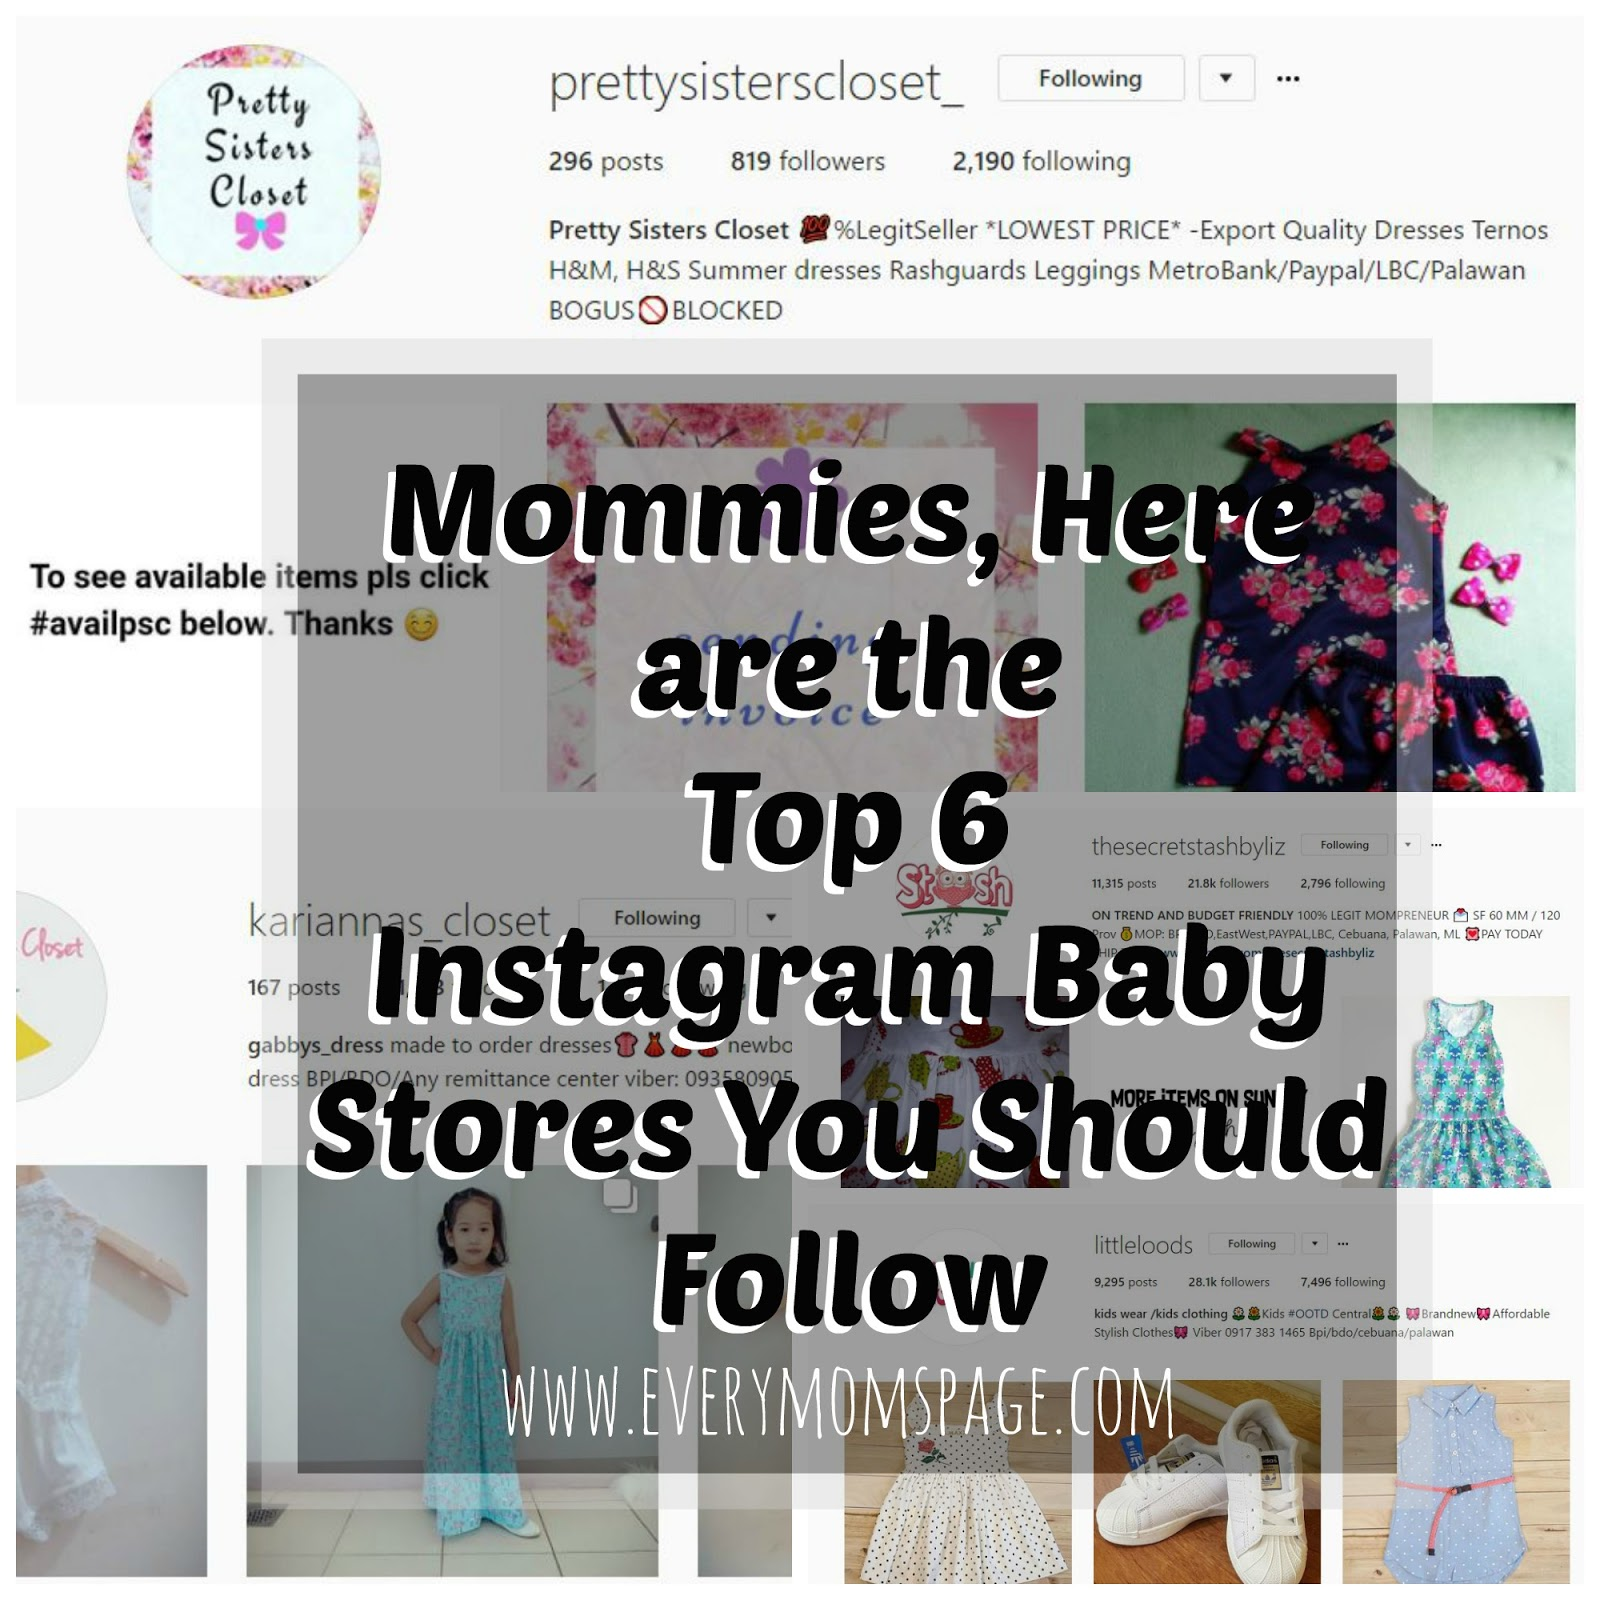 EveryMom sPage Top 6 Instagram Baby Stores You should Follow